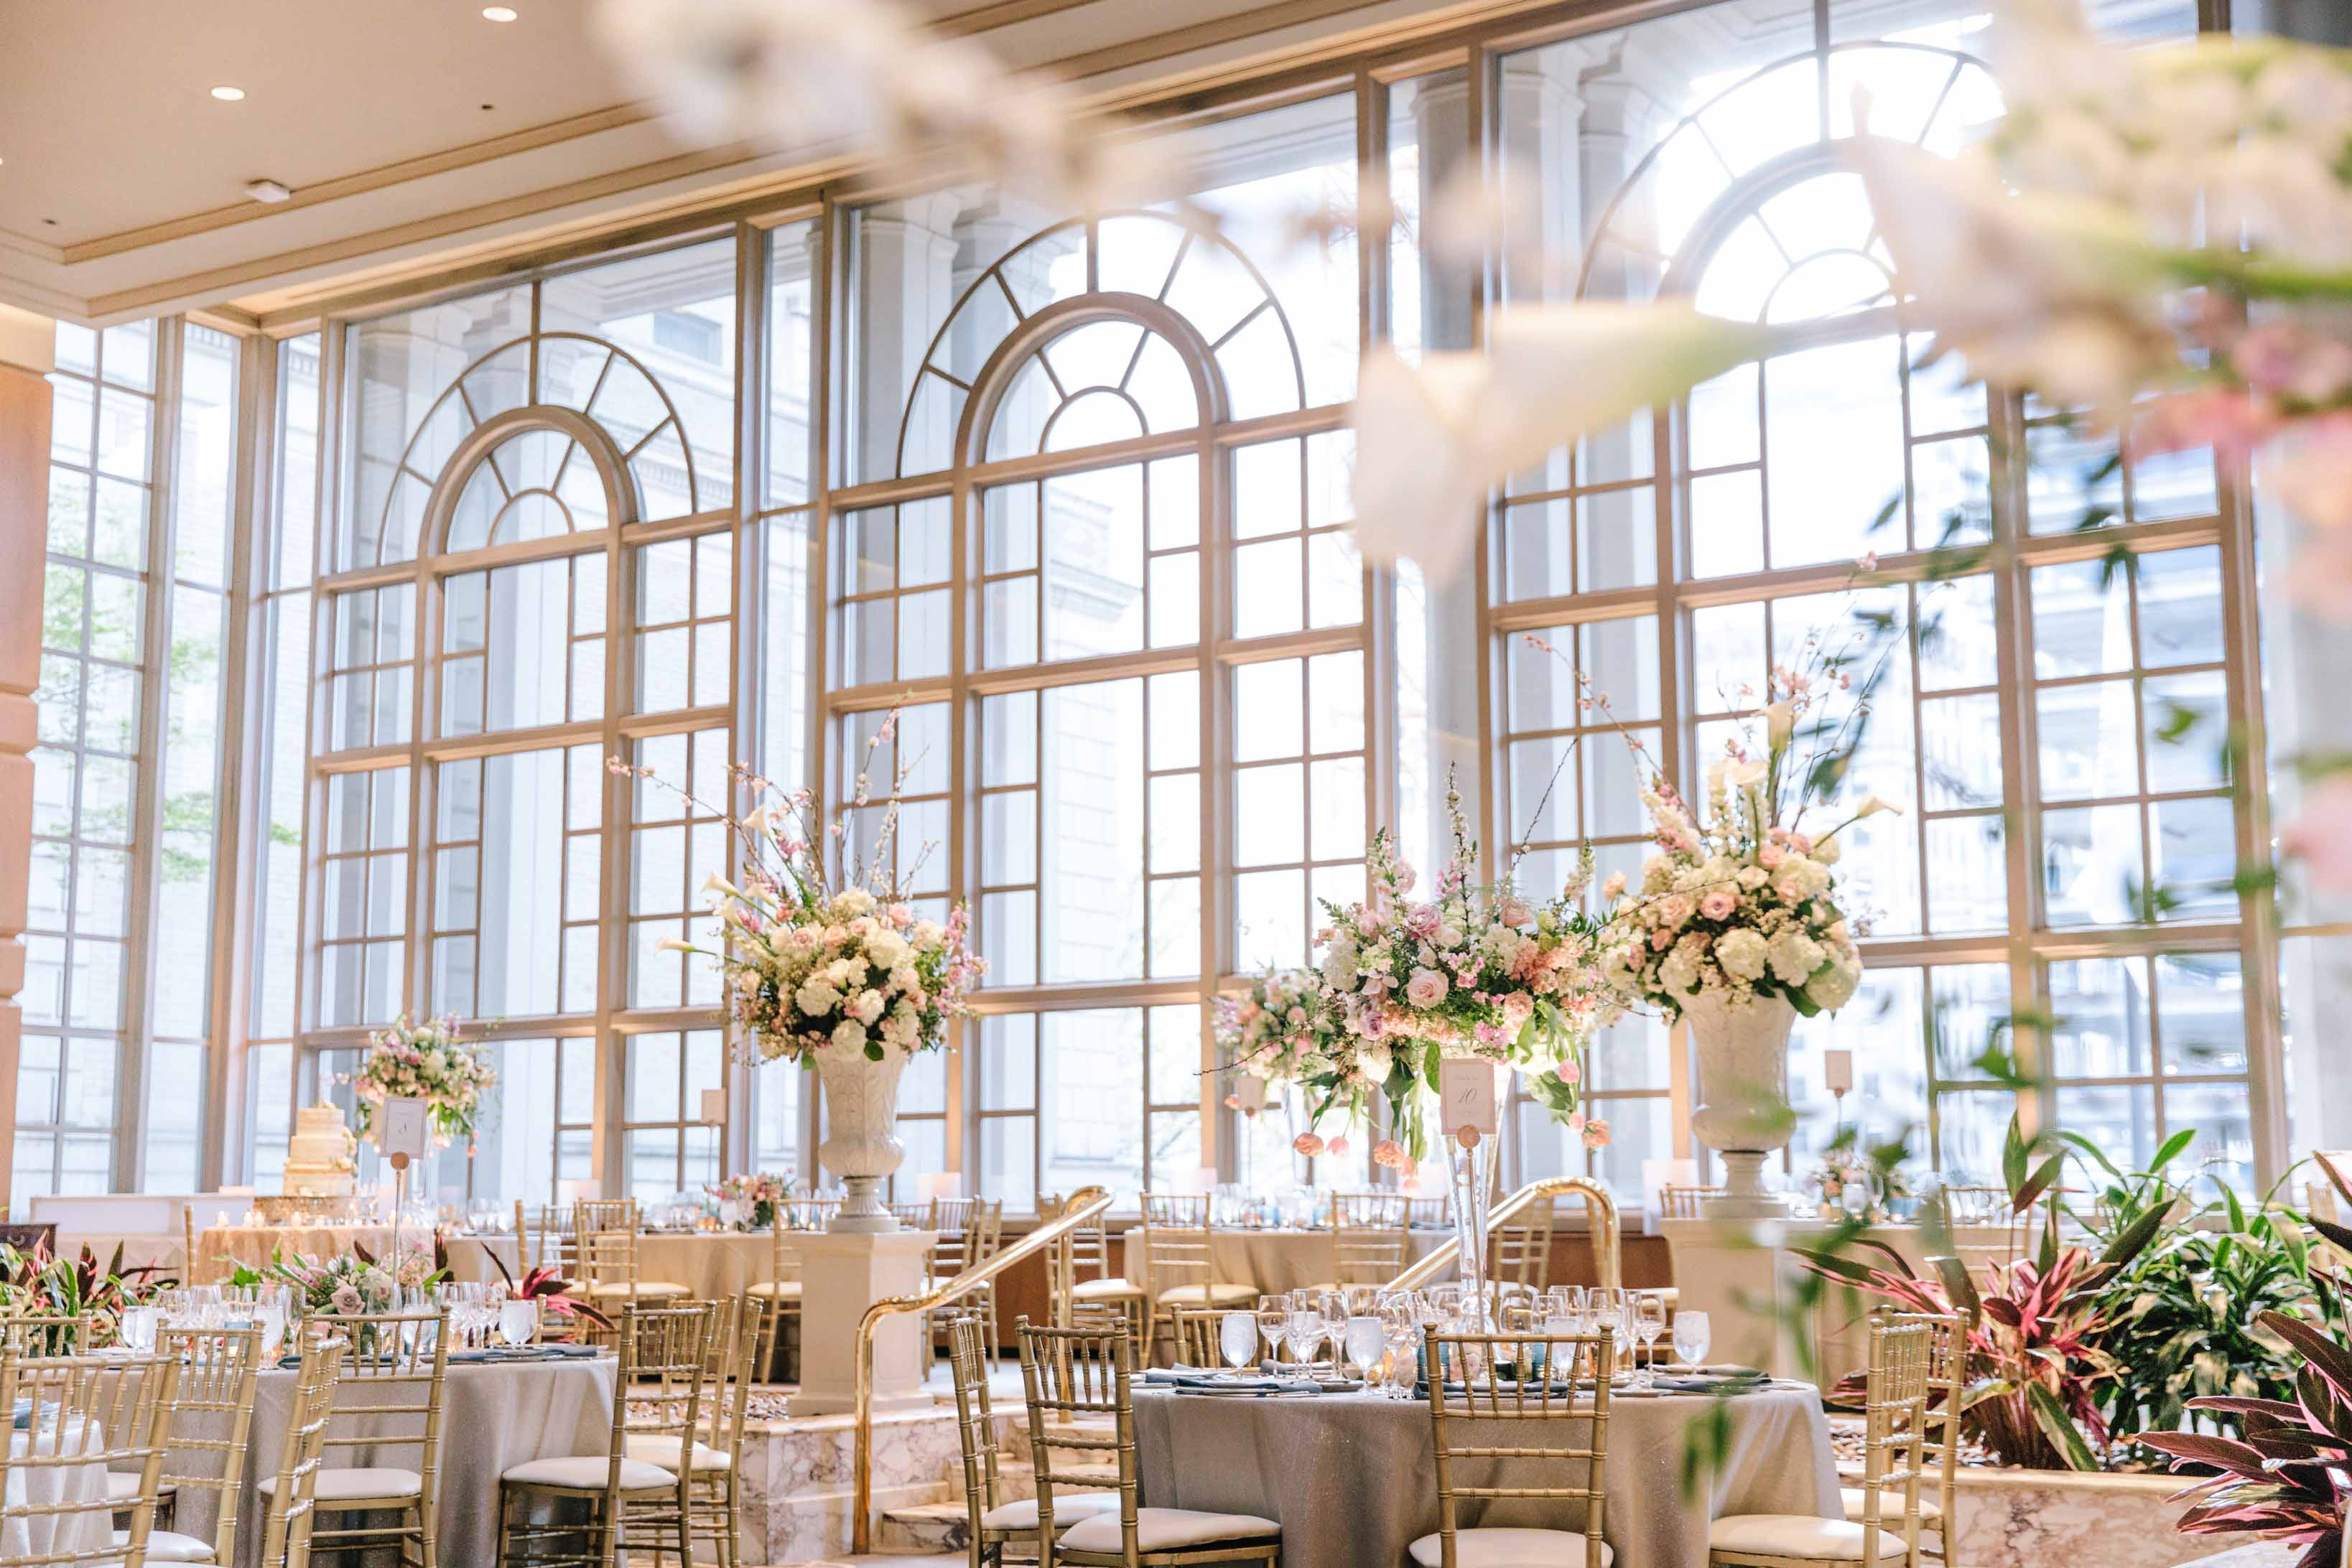 Garden Room of the Fairmont Olympic Hotel decorated with tall centerpieces for a spring wedding